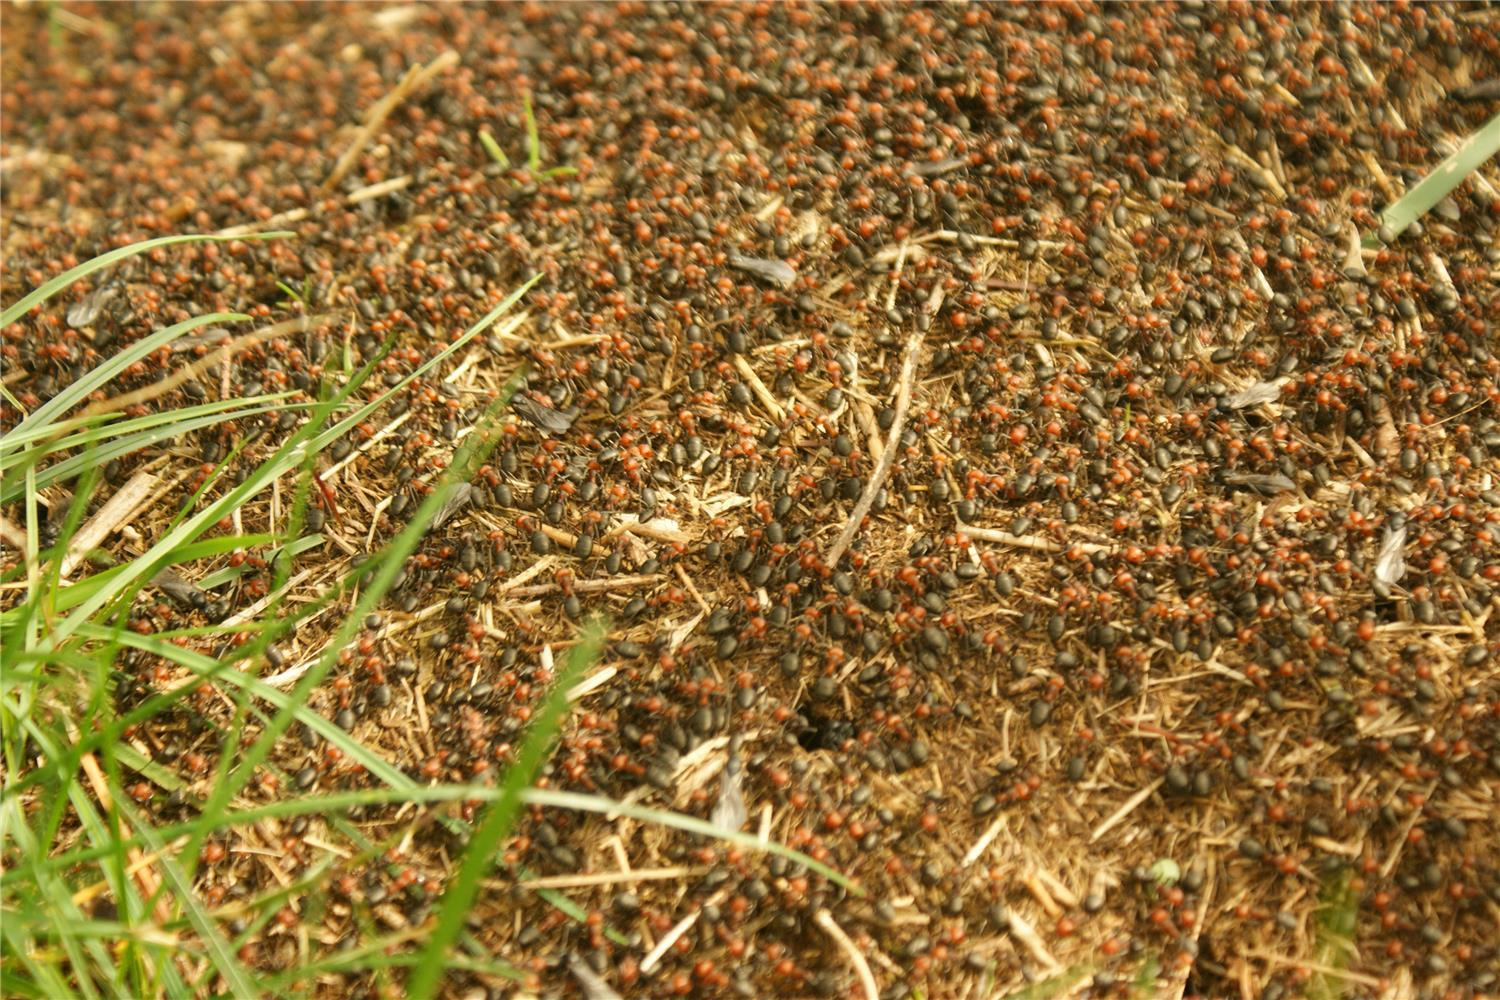 Thatching Ants